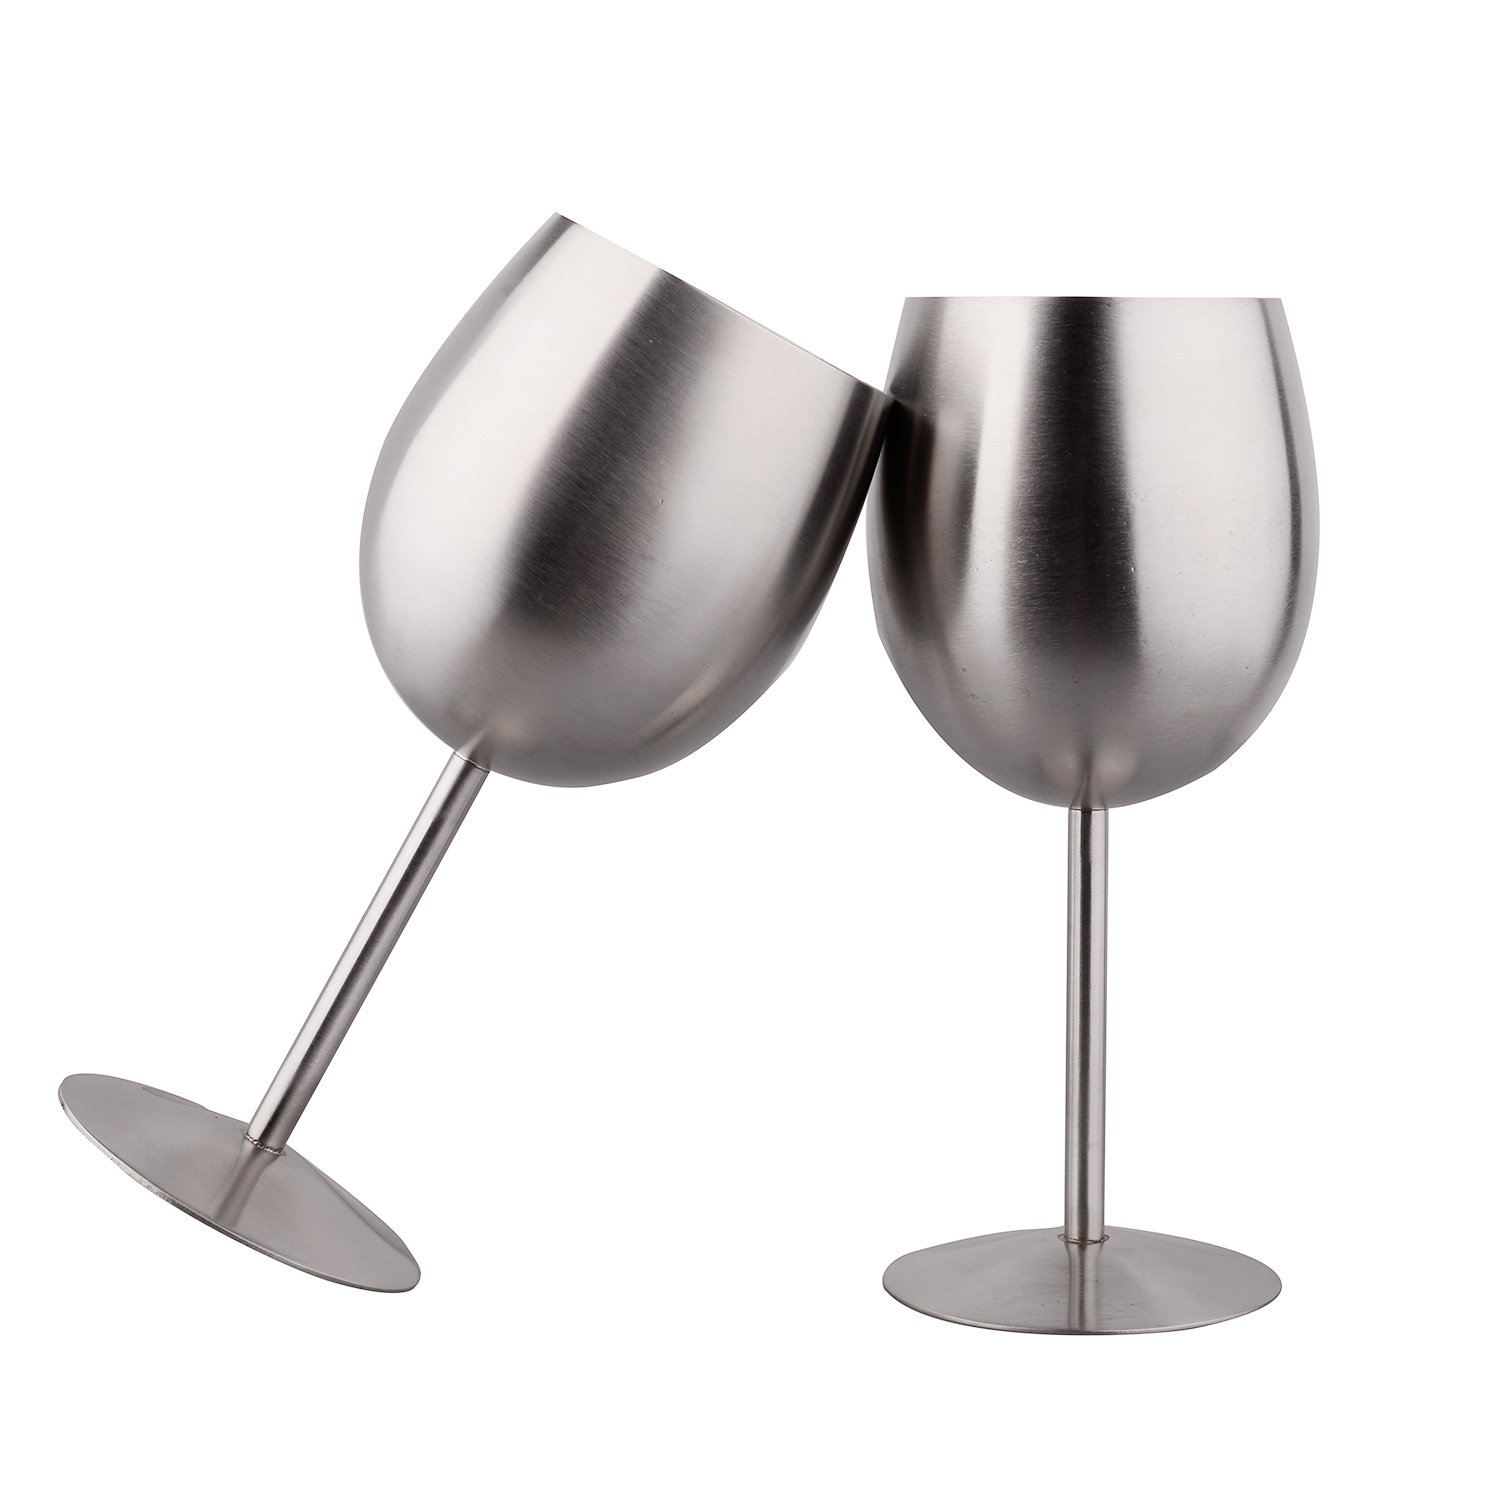 IMEEA® 10 Oz SUS304 Brushed Stainless Steel Wine Goblets Champagne Goblet, Set of 2